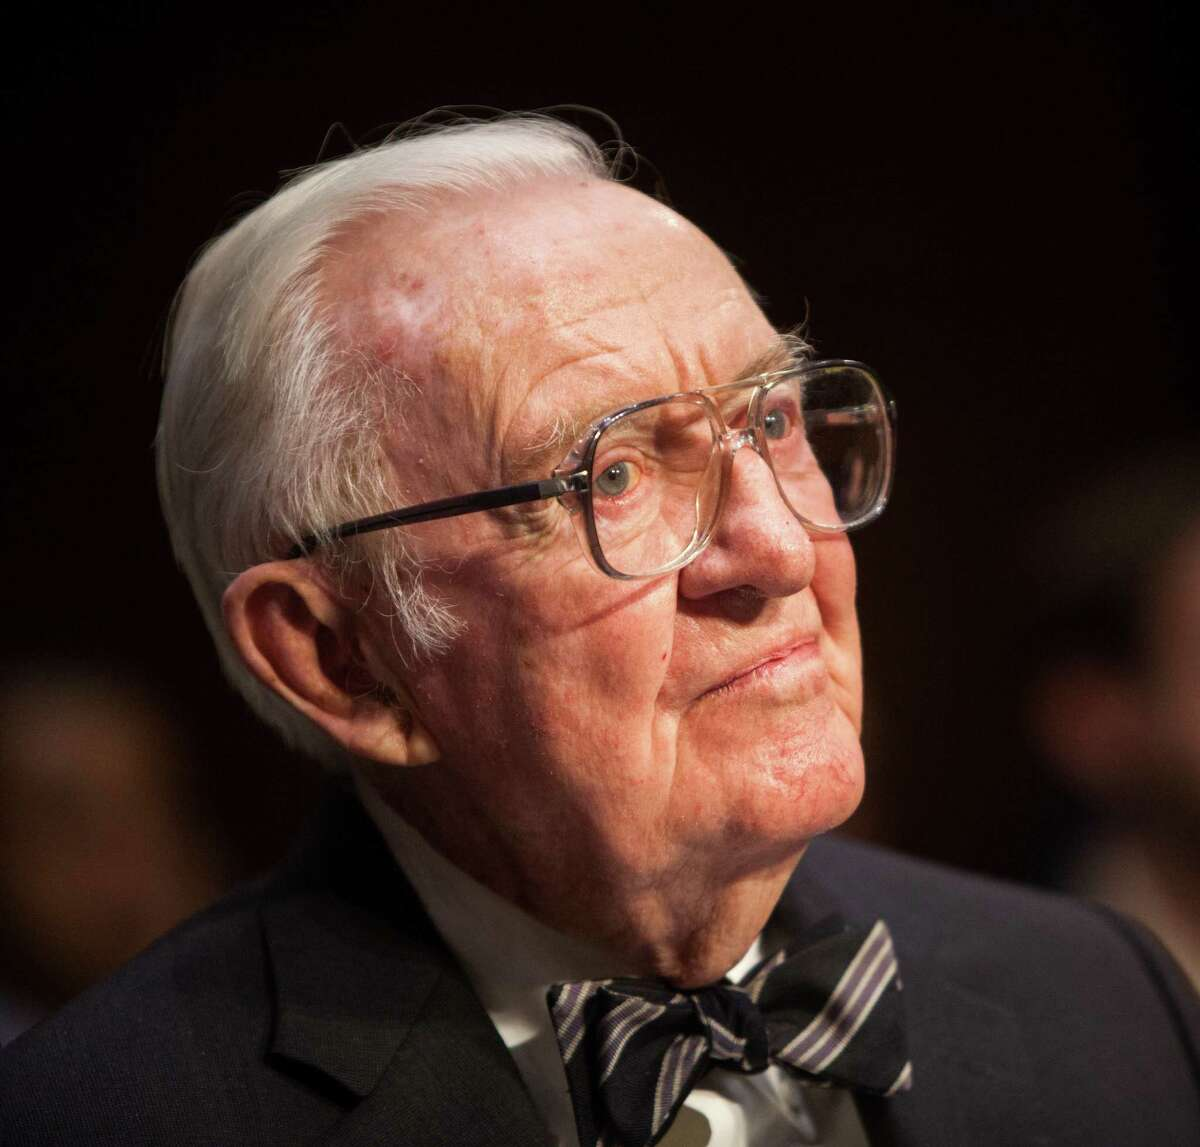 Former Supreme Court Justice John Paul Stevens suggests there be constitutional amendments that would eliminate gerrymandering and allow for limits on campaign contributions and spending.